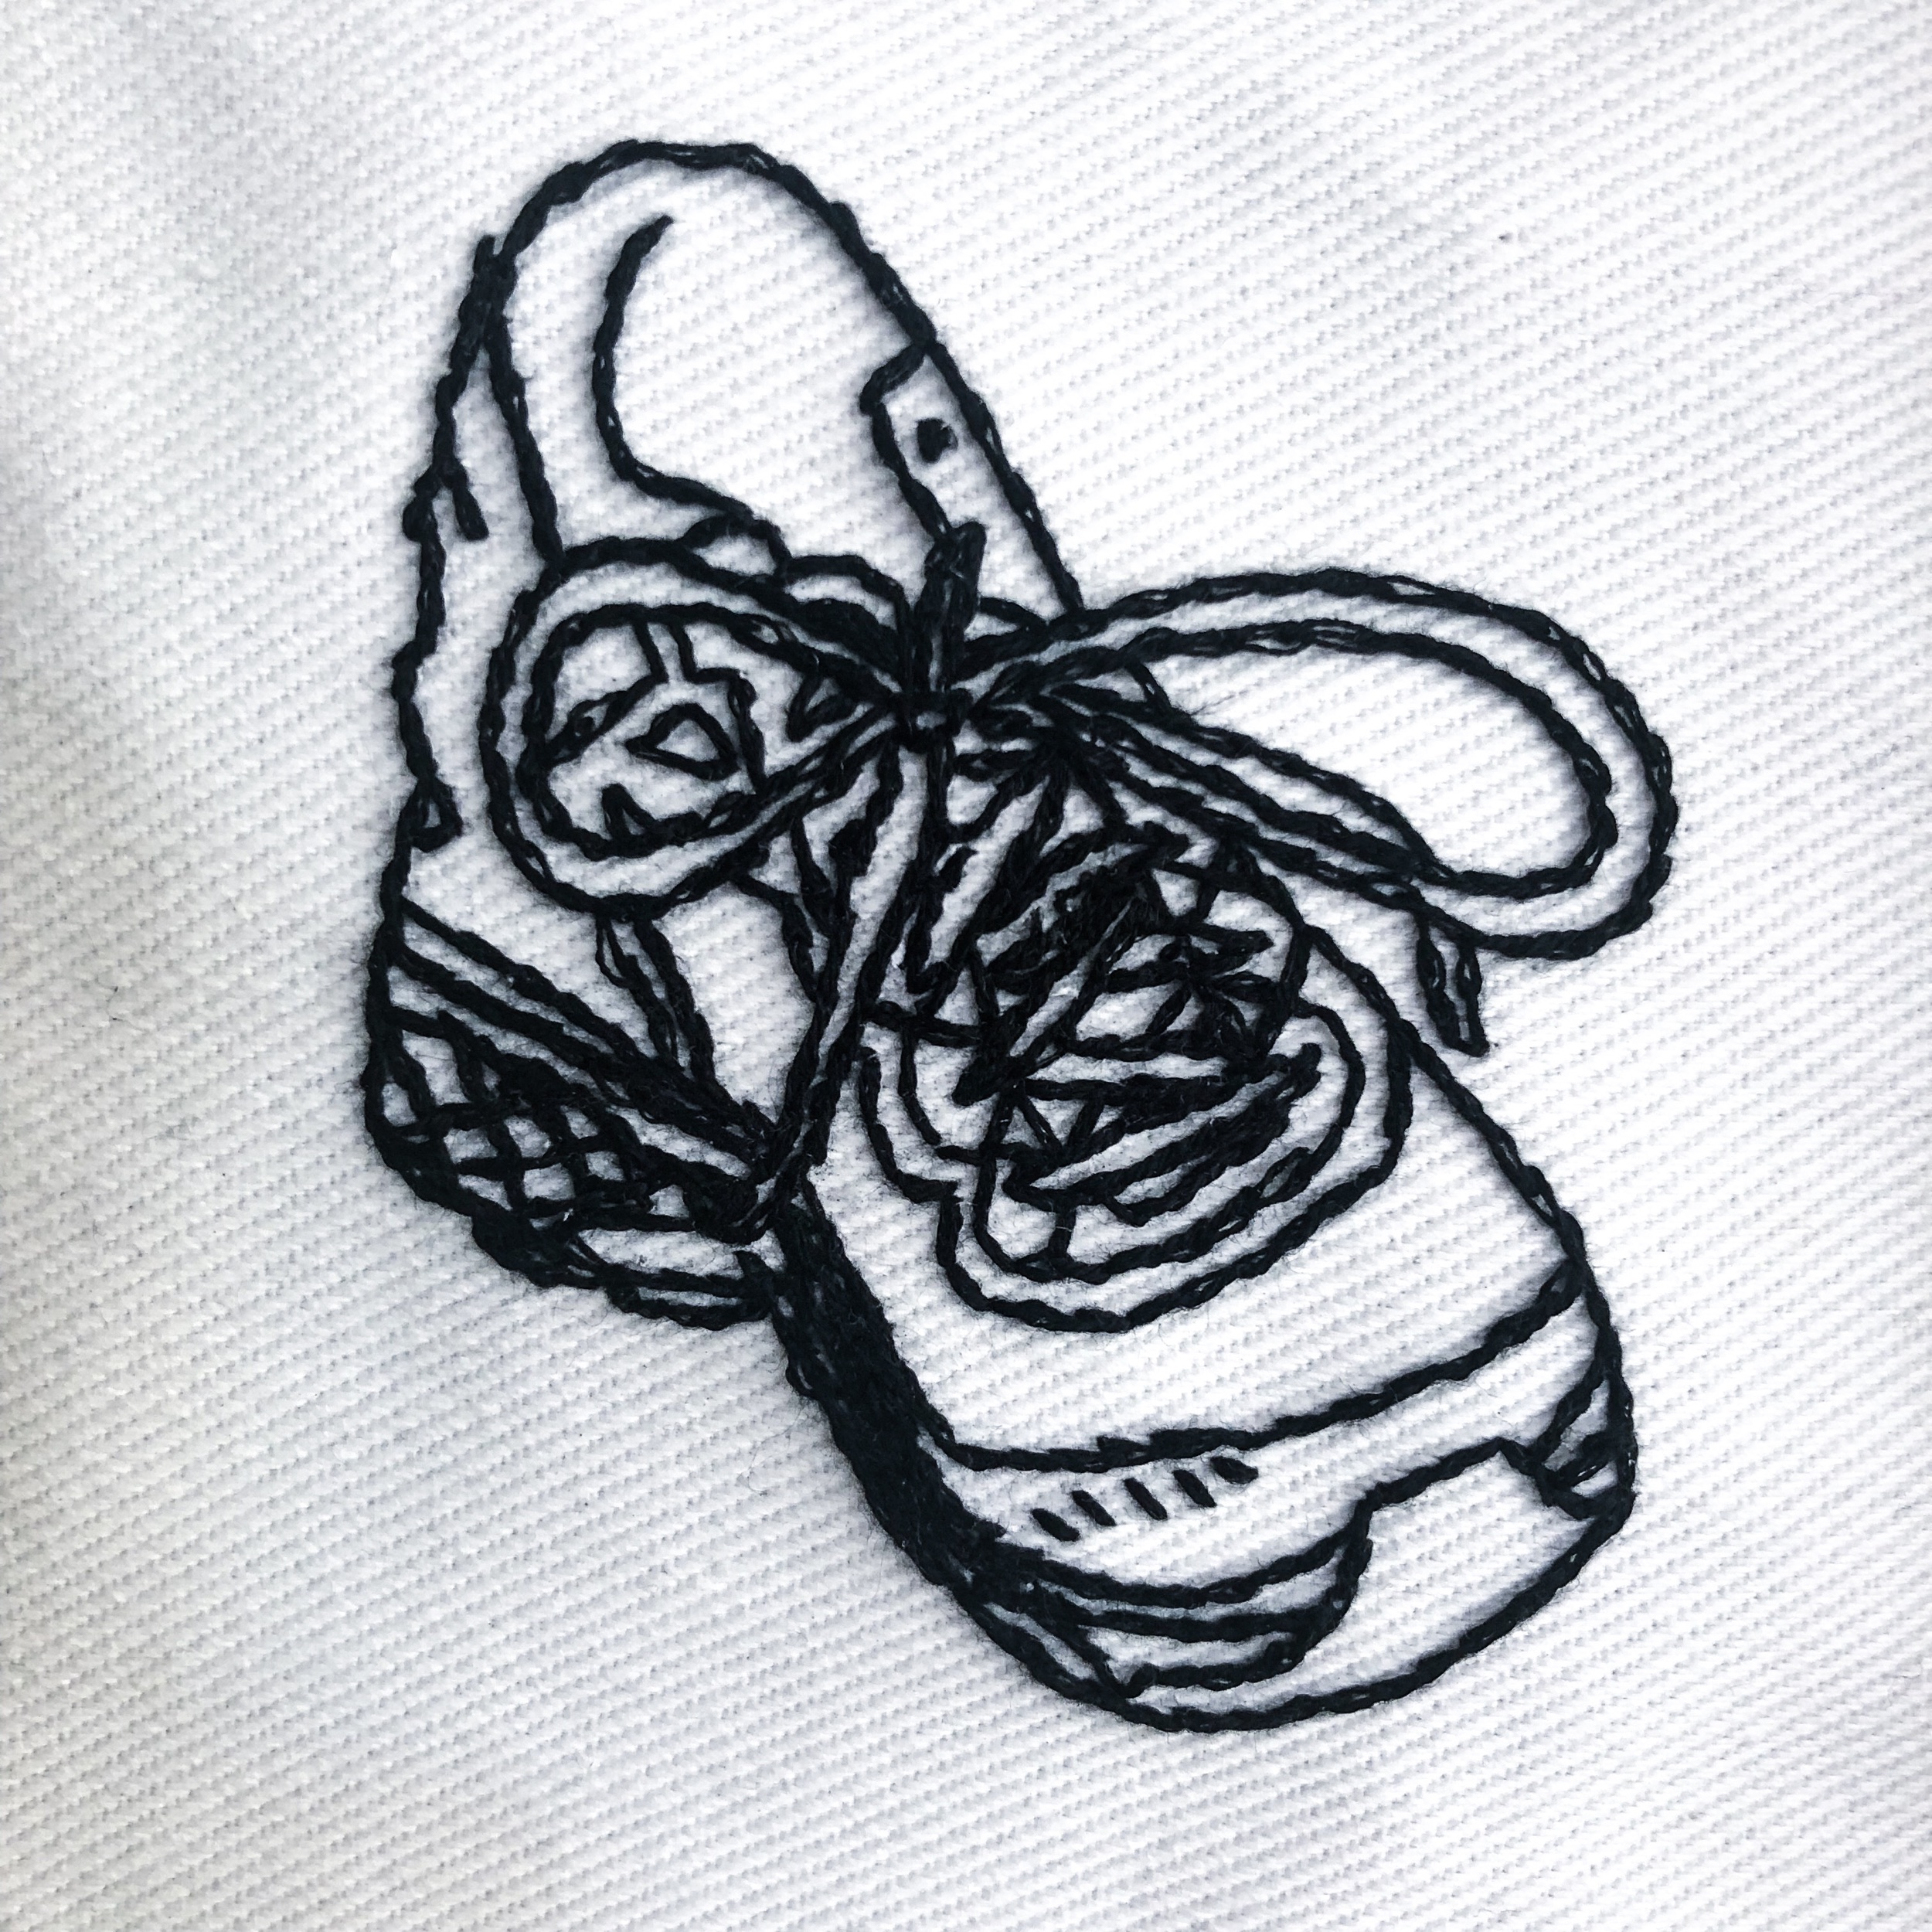 jordan_kushins_running_shoe_embroidery.jpeg